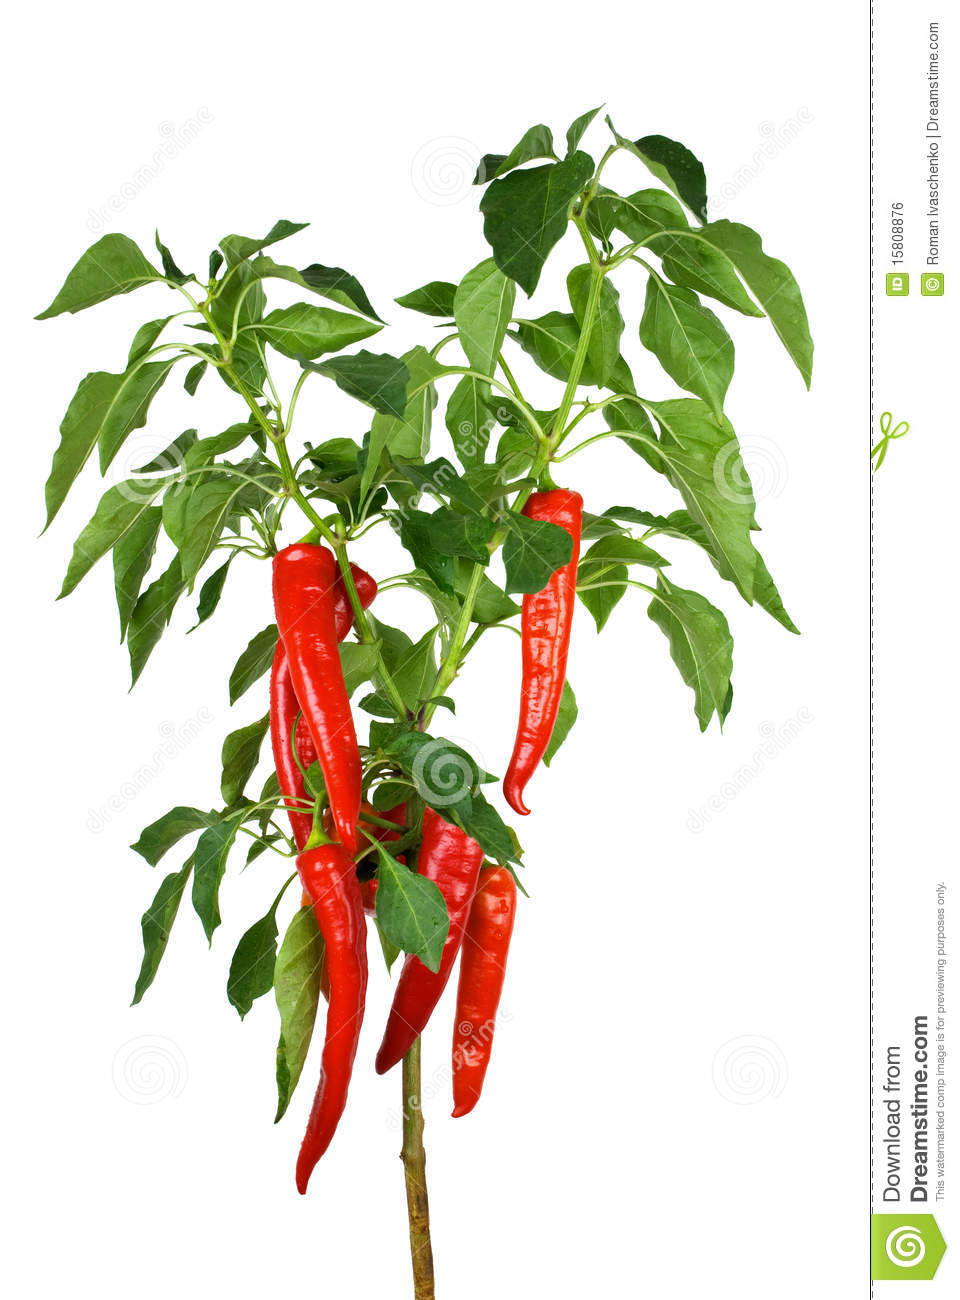 Chili Pepper Plant Royalty Free Stock Image.